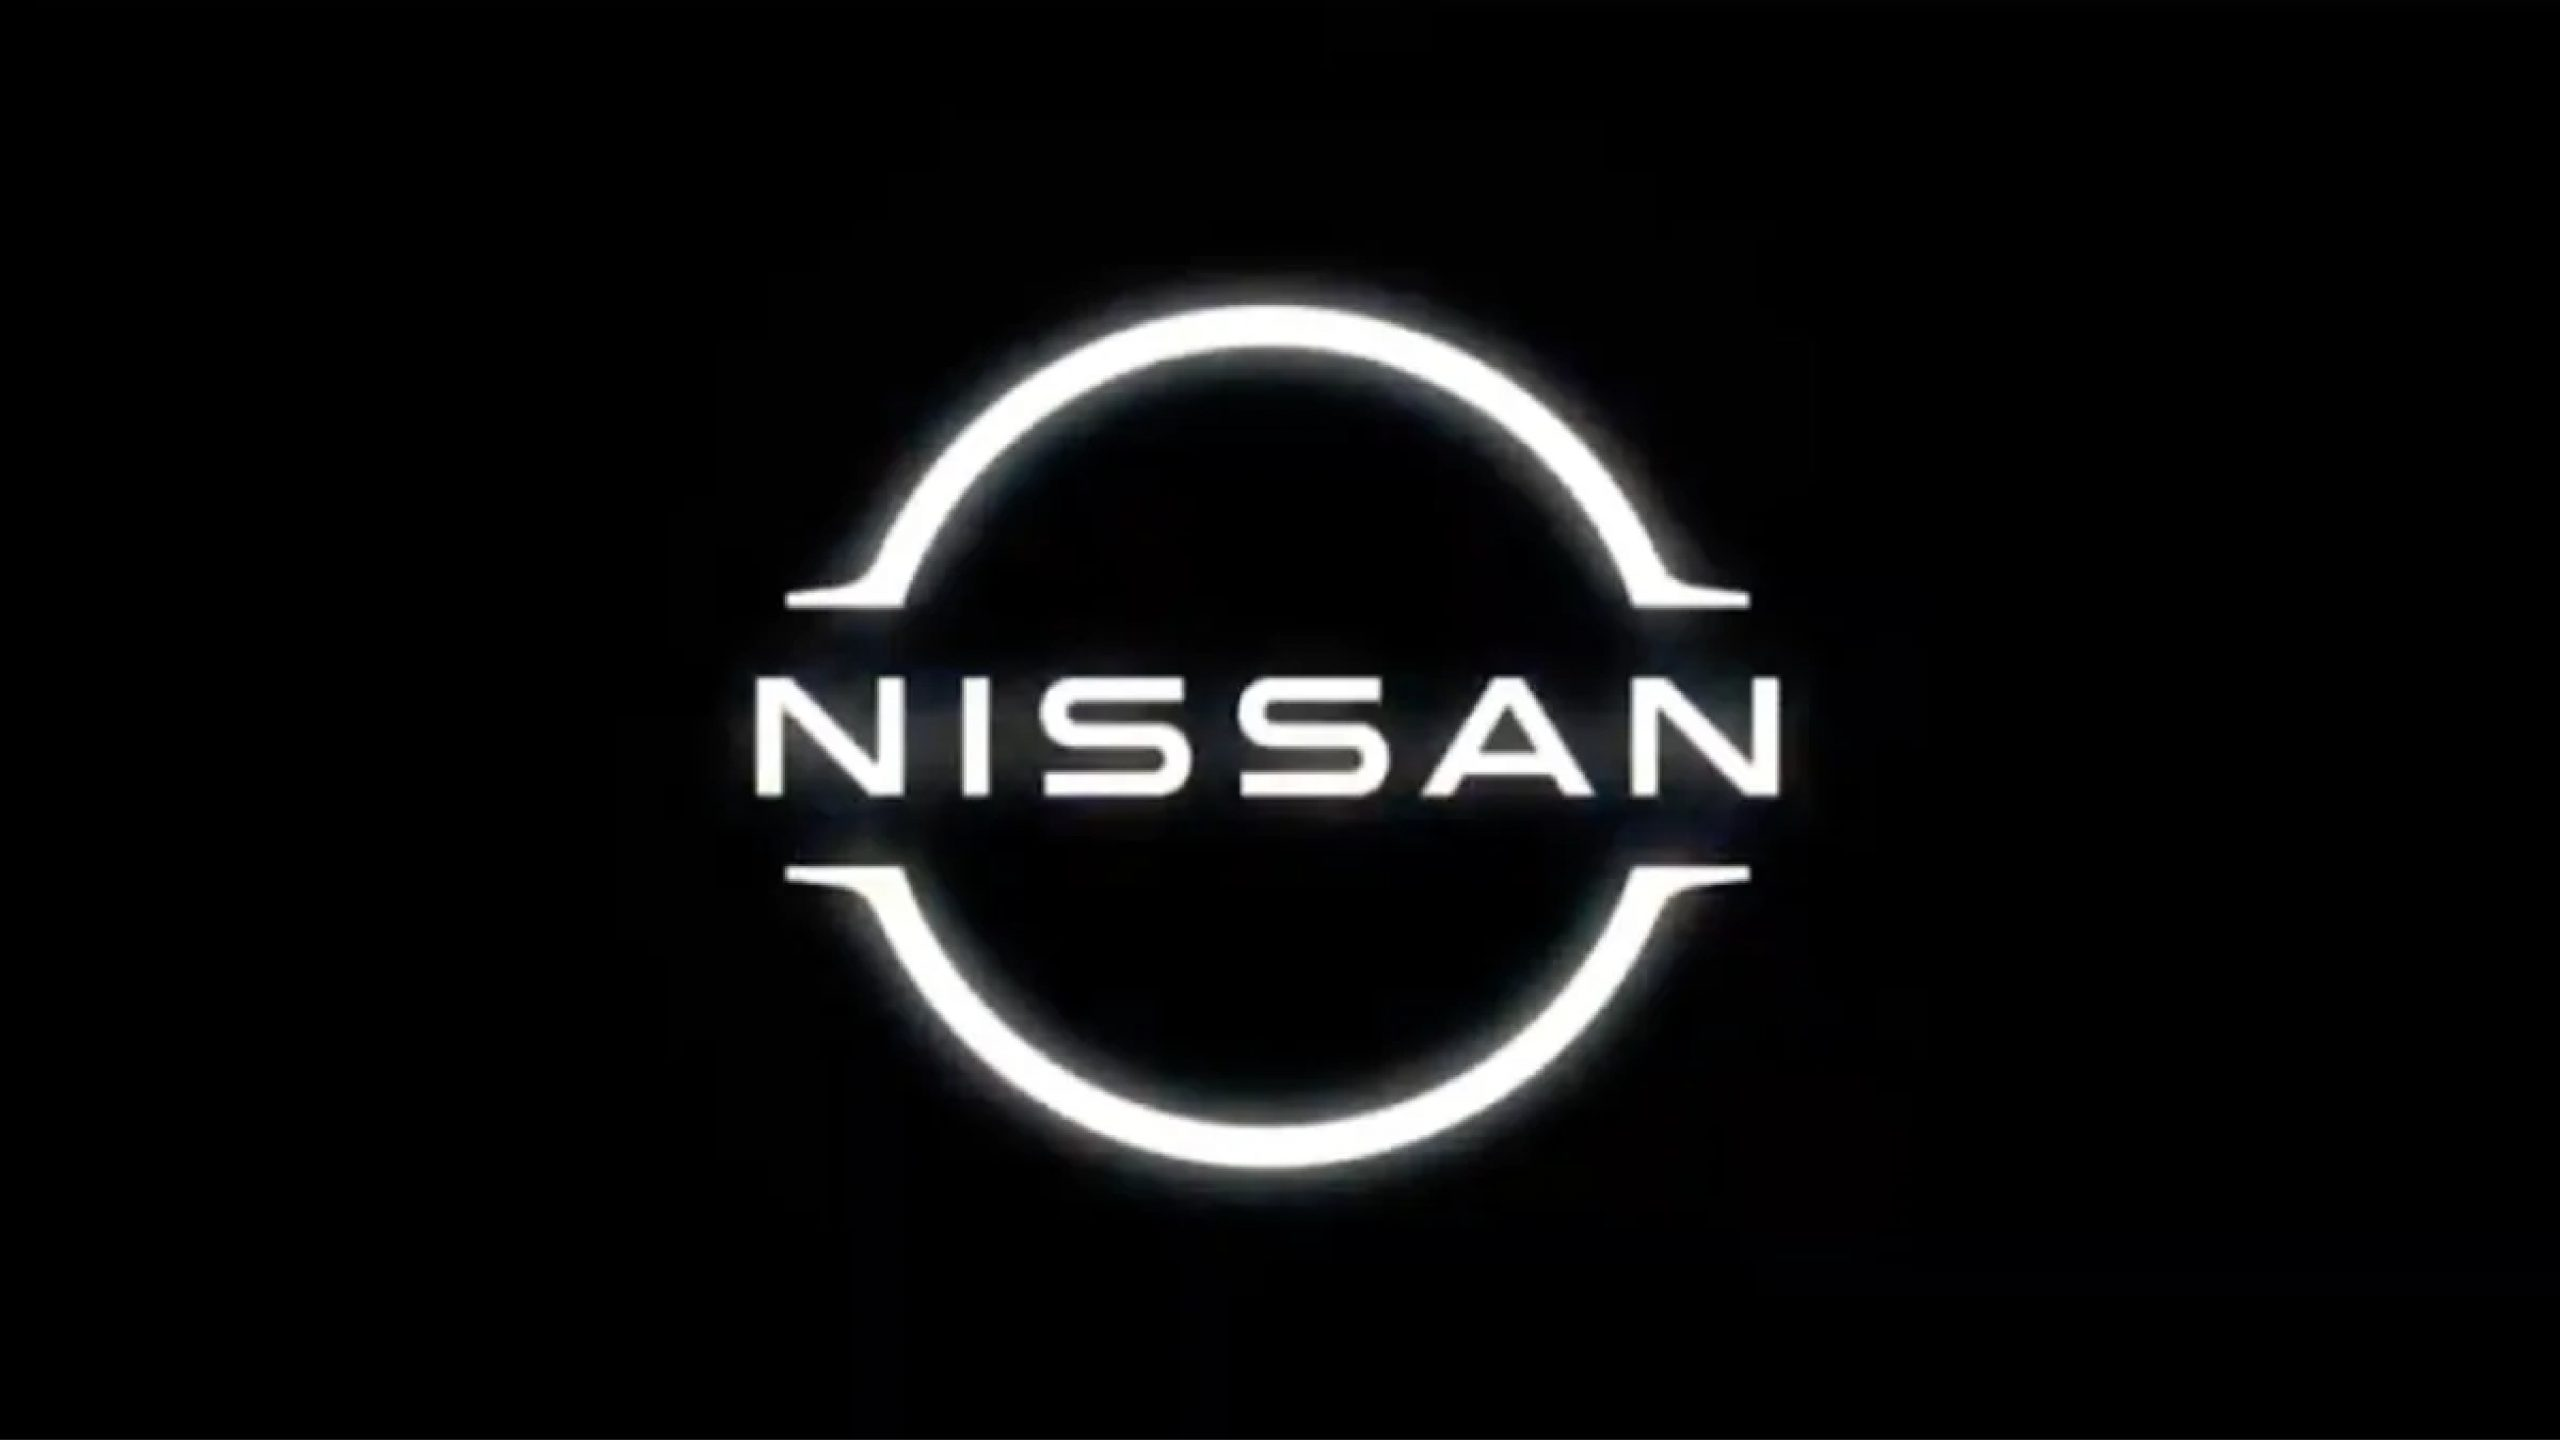 ghandhara nissan announces to bring multi-billion investment in auto sector